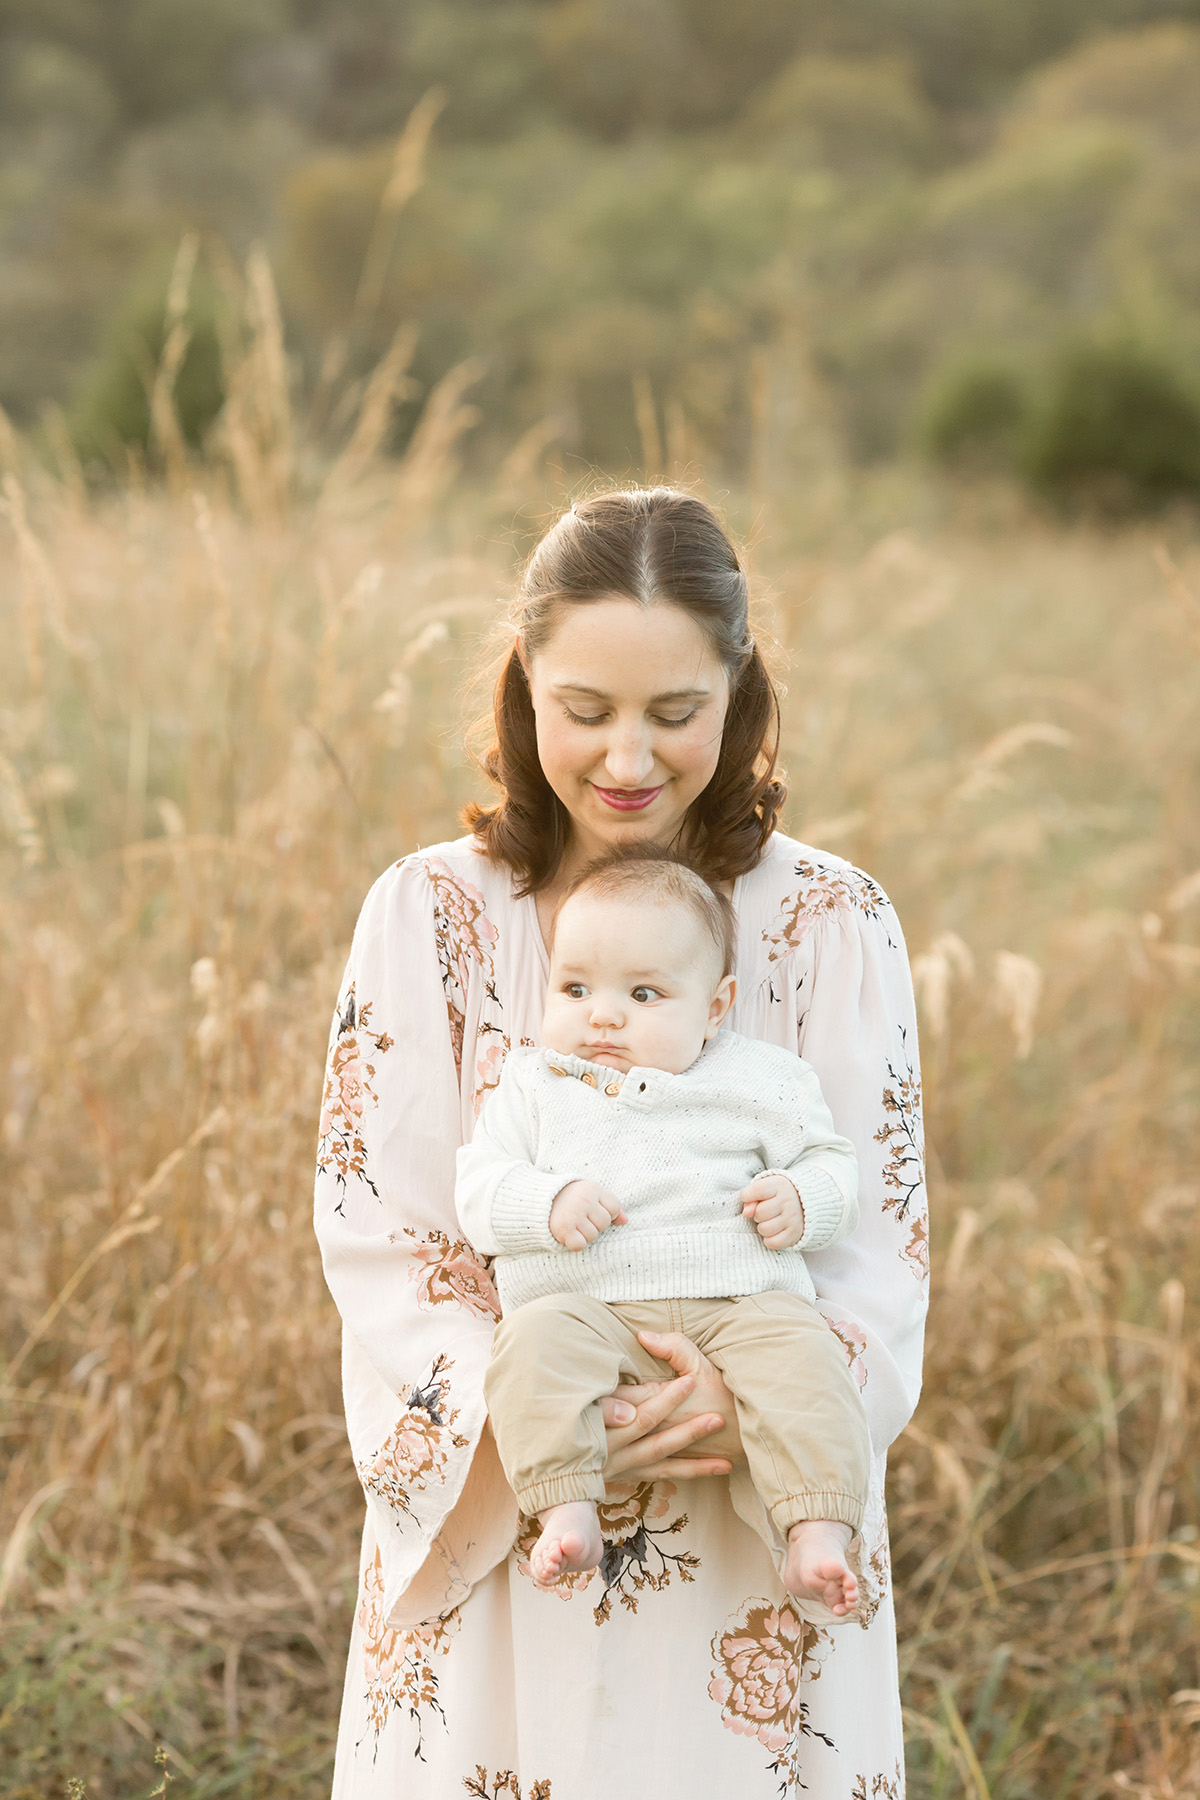 Louisville KY Family Photographer | Julie Brock Photography | Newborn | Maternity | Outdoor Family Photo Shoot in a Field with a baby.jpg